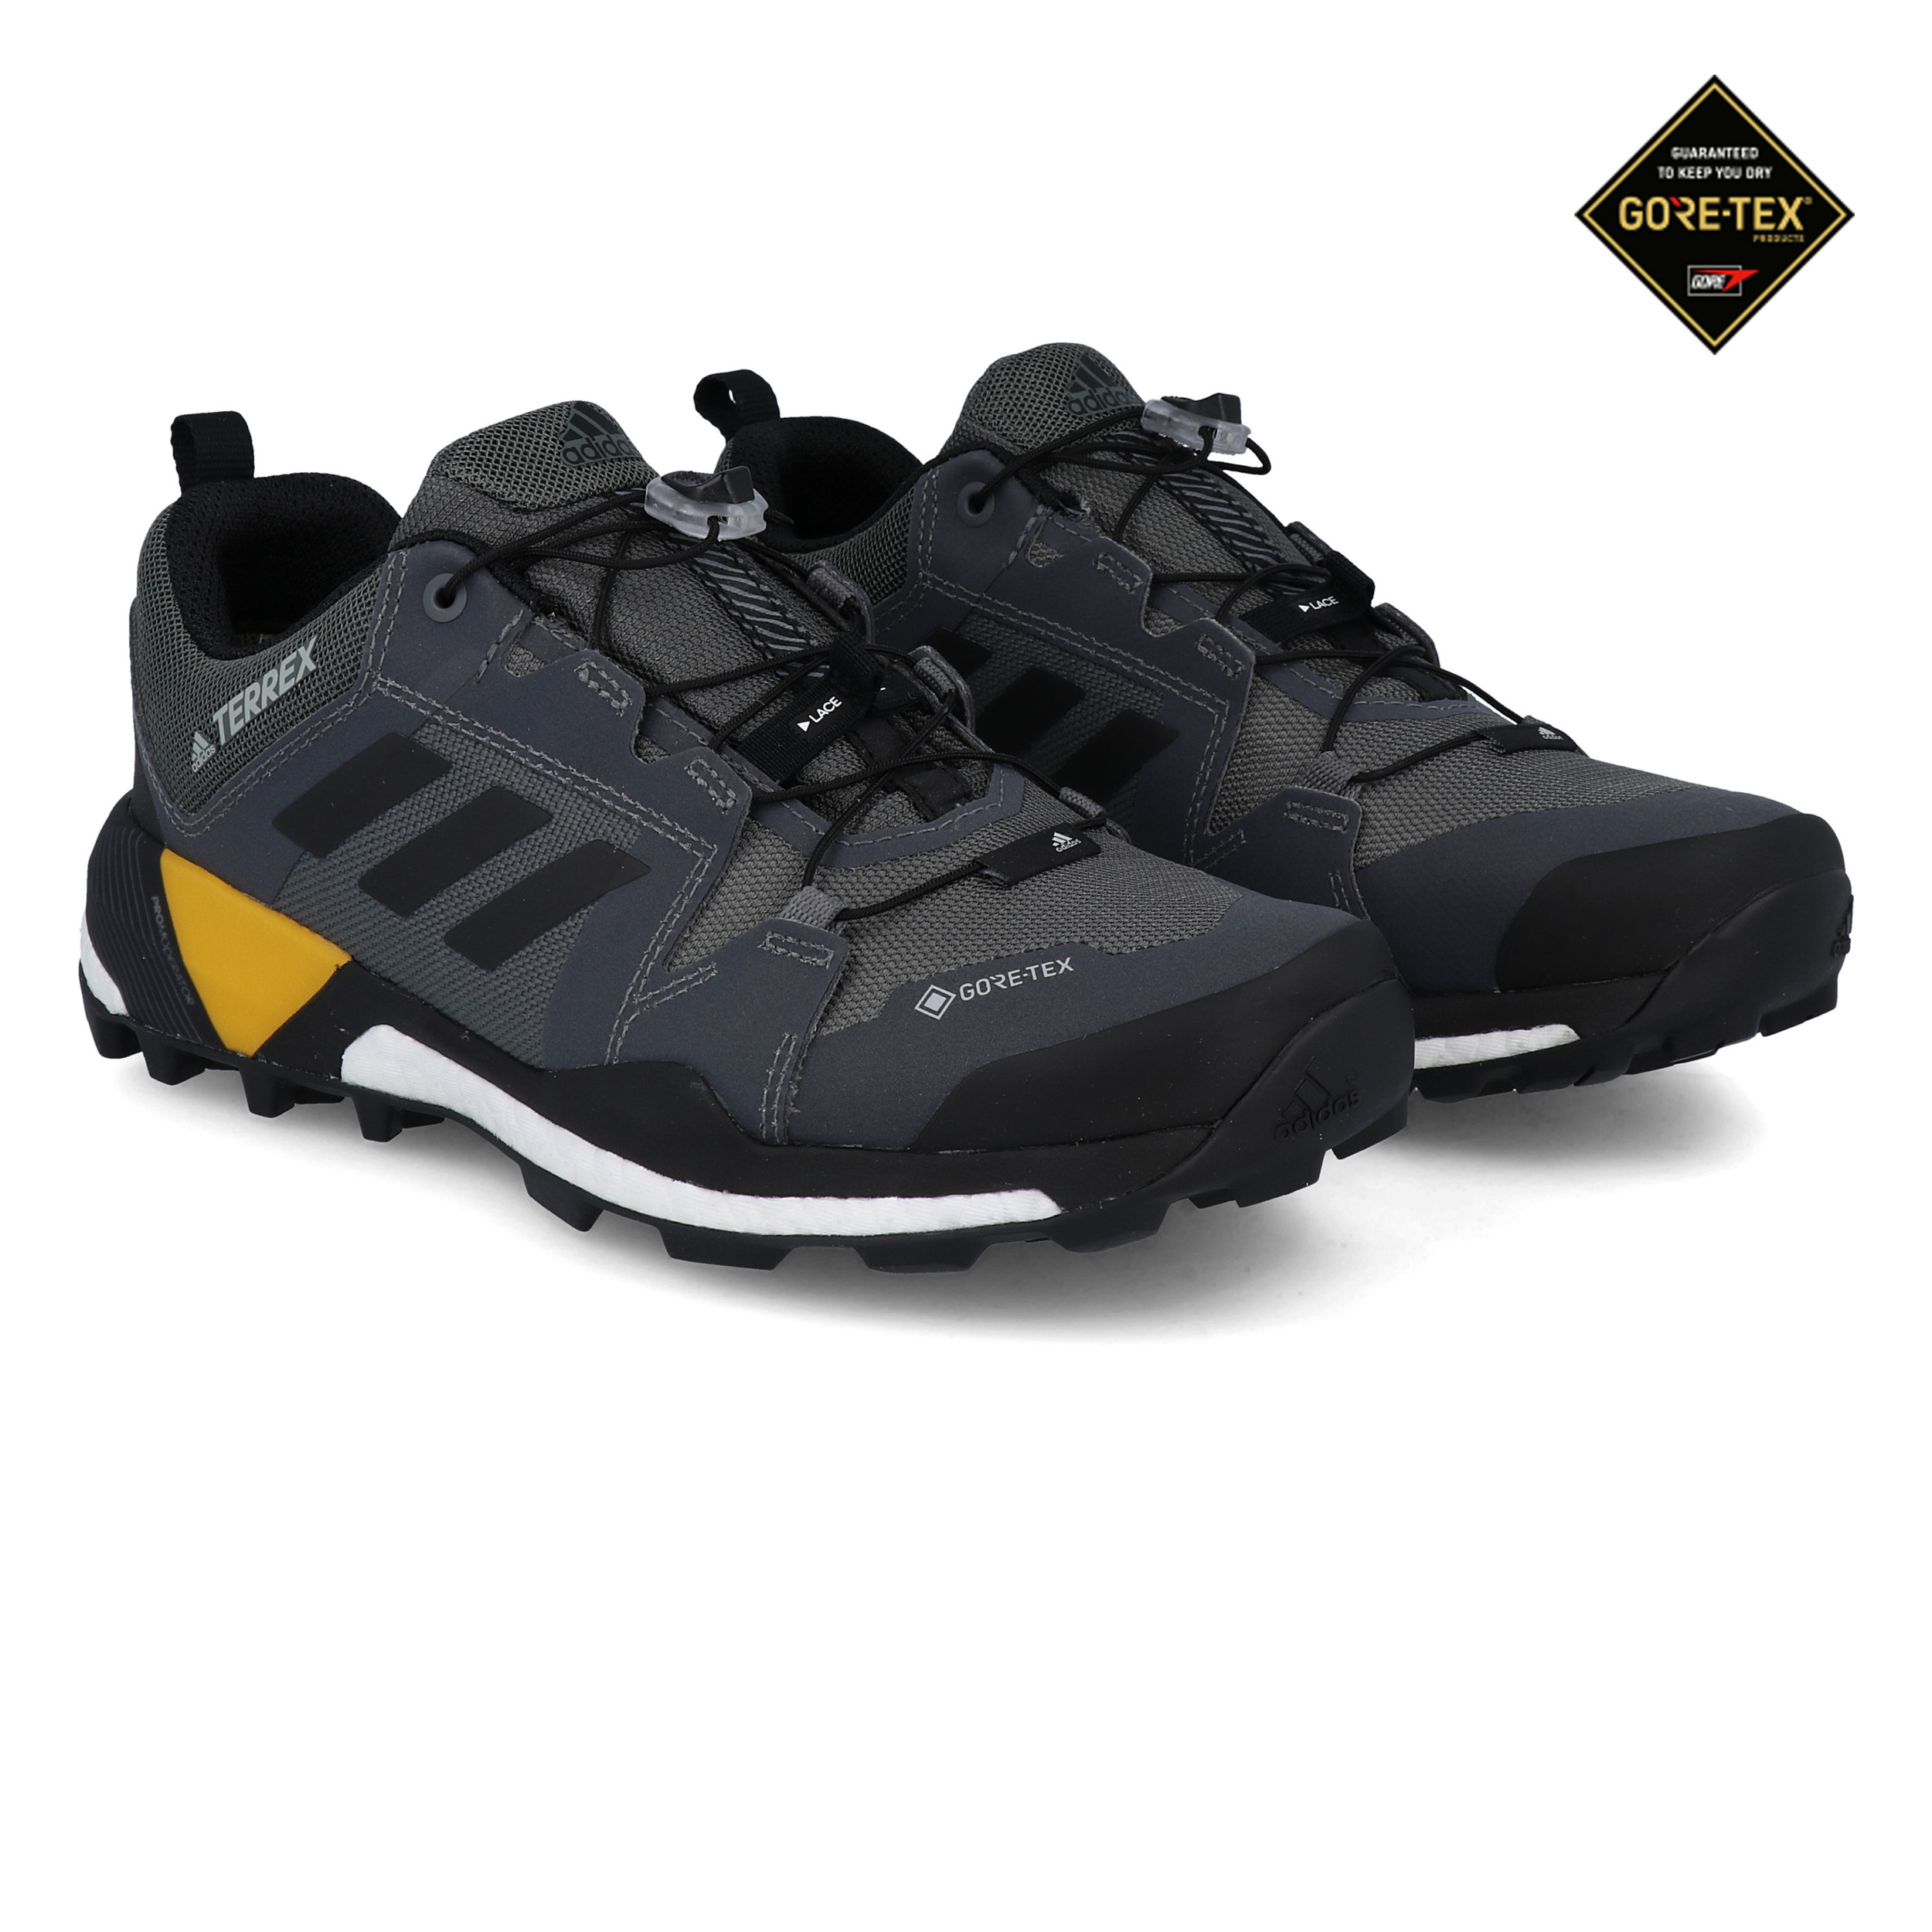 6 Best Adidas Gore Tex Hiking Boots (Buyer's Guide) | RunRepeat